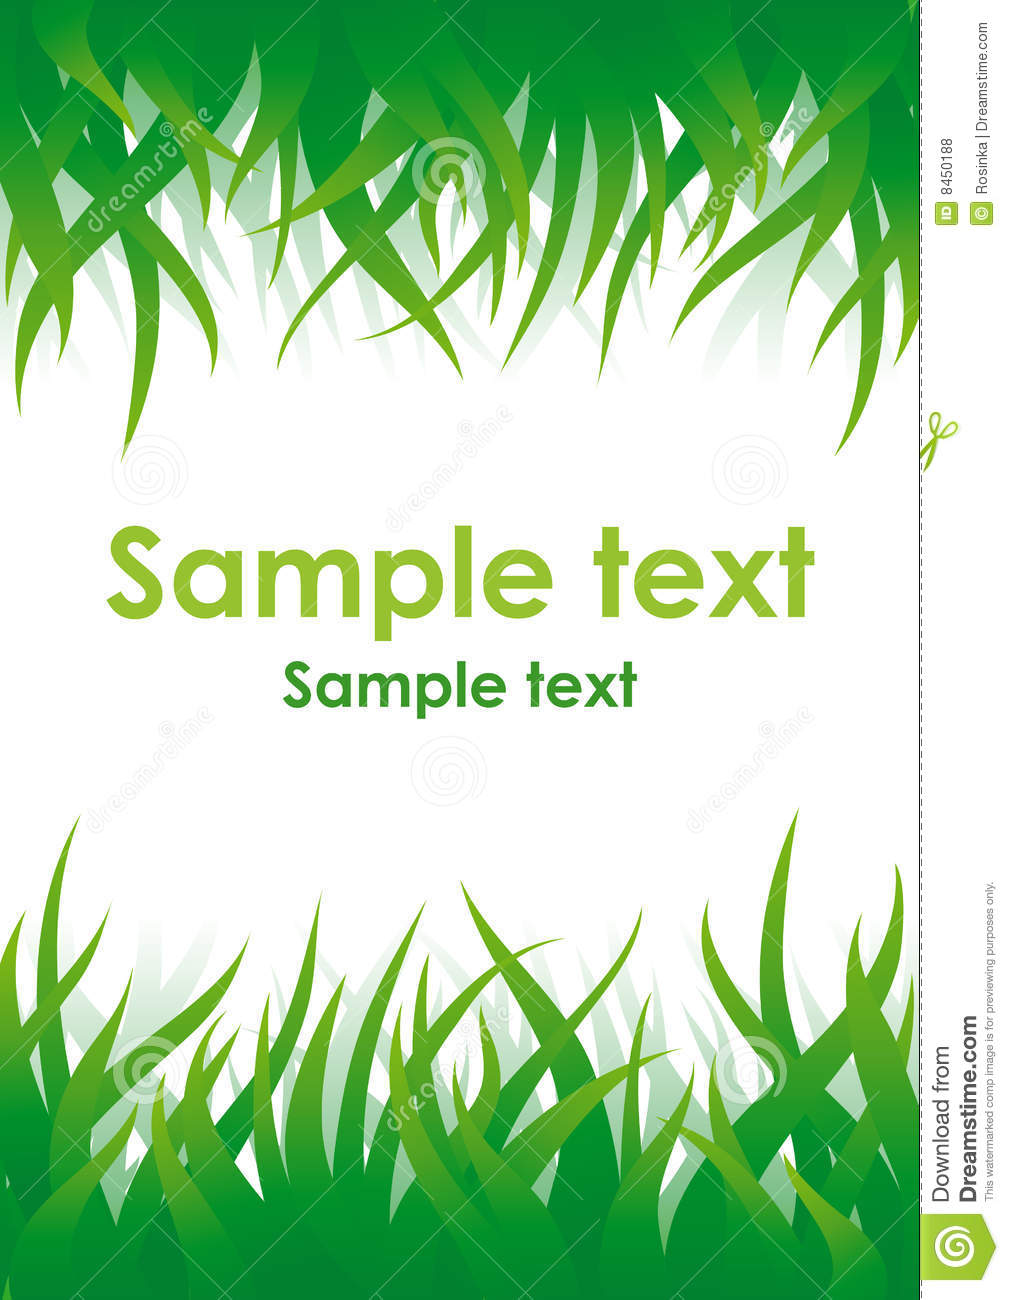 Green Grass Vector Background Royalty Free Stock Photos - Image ...